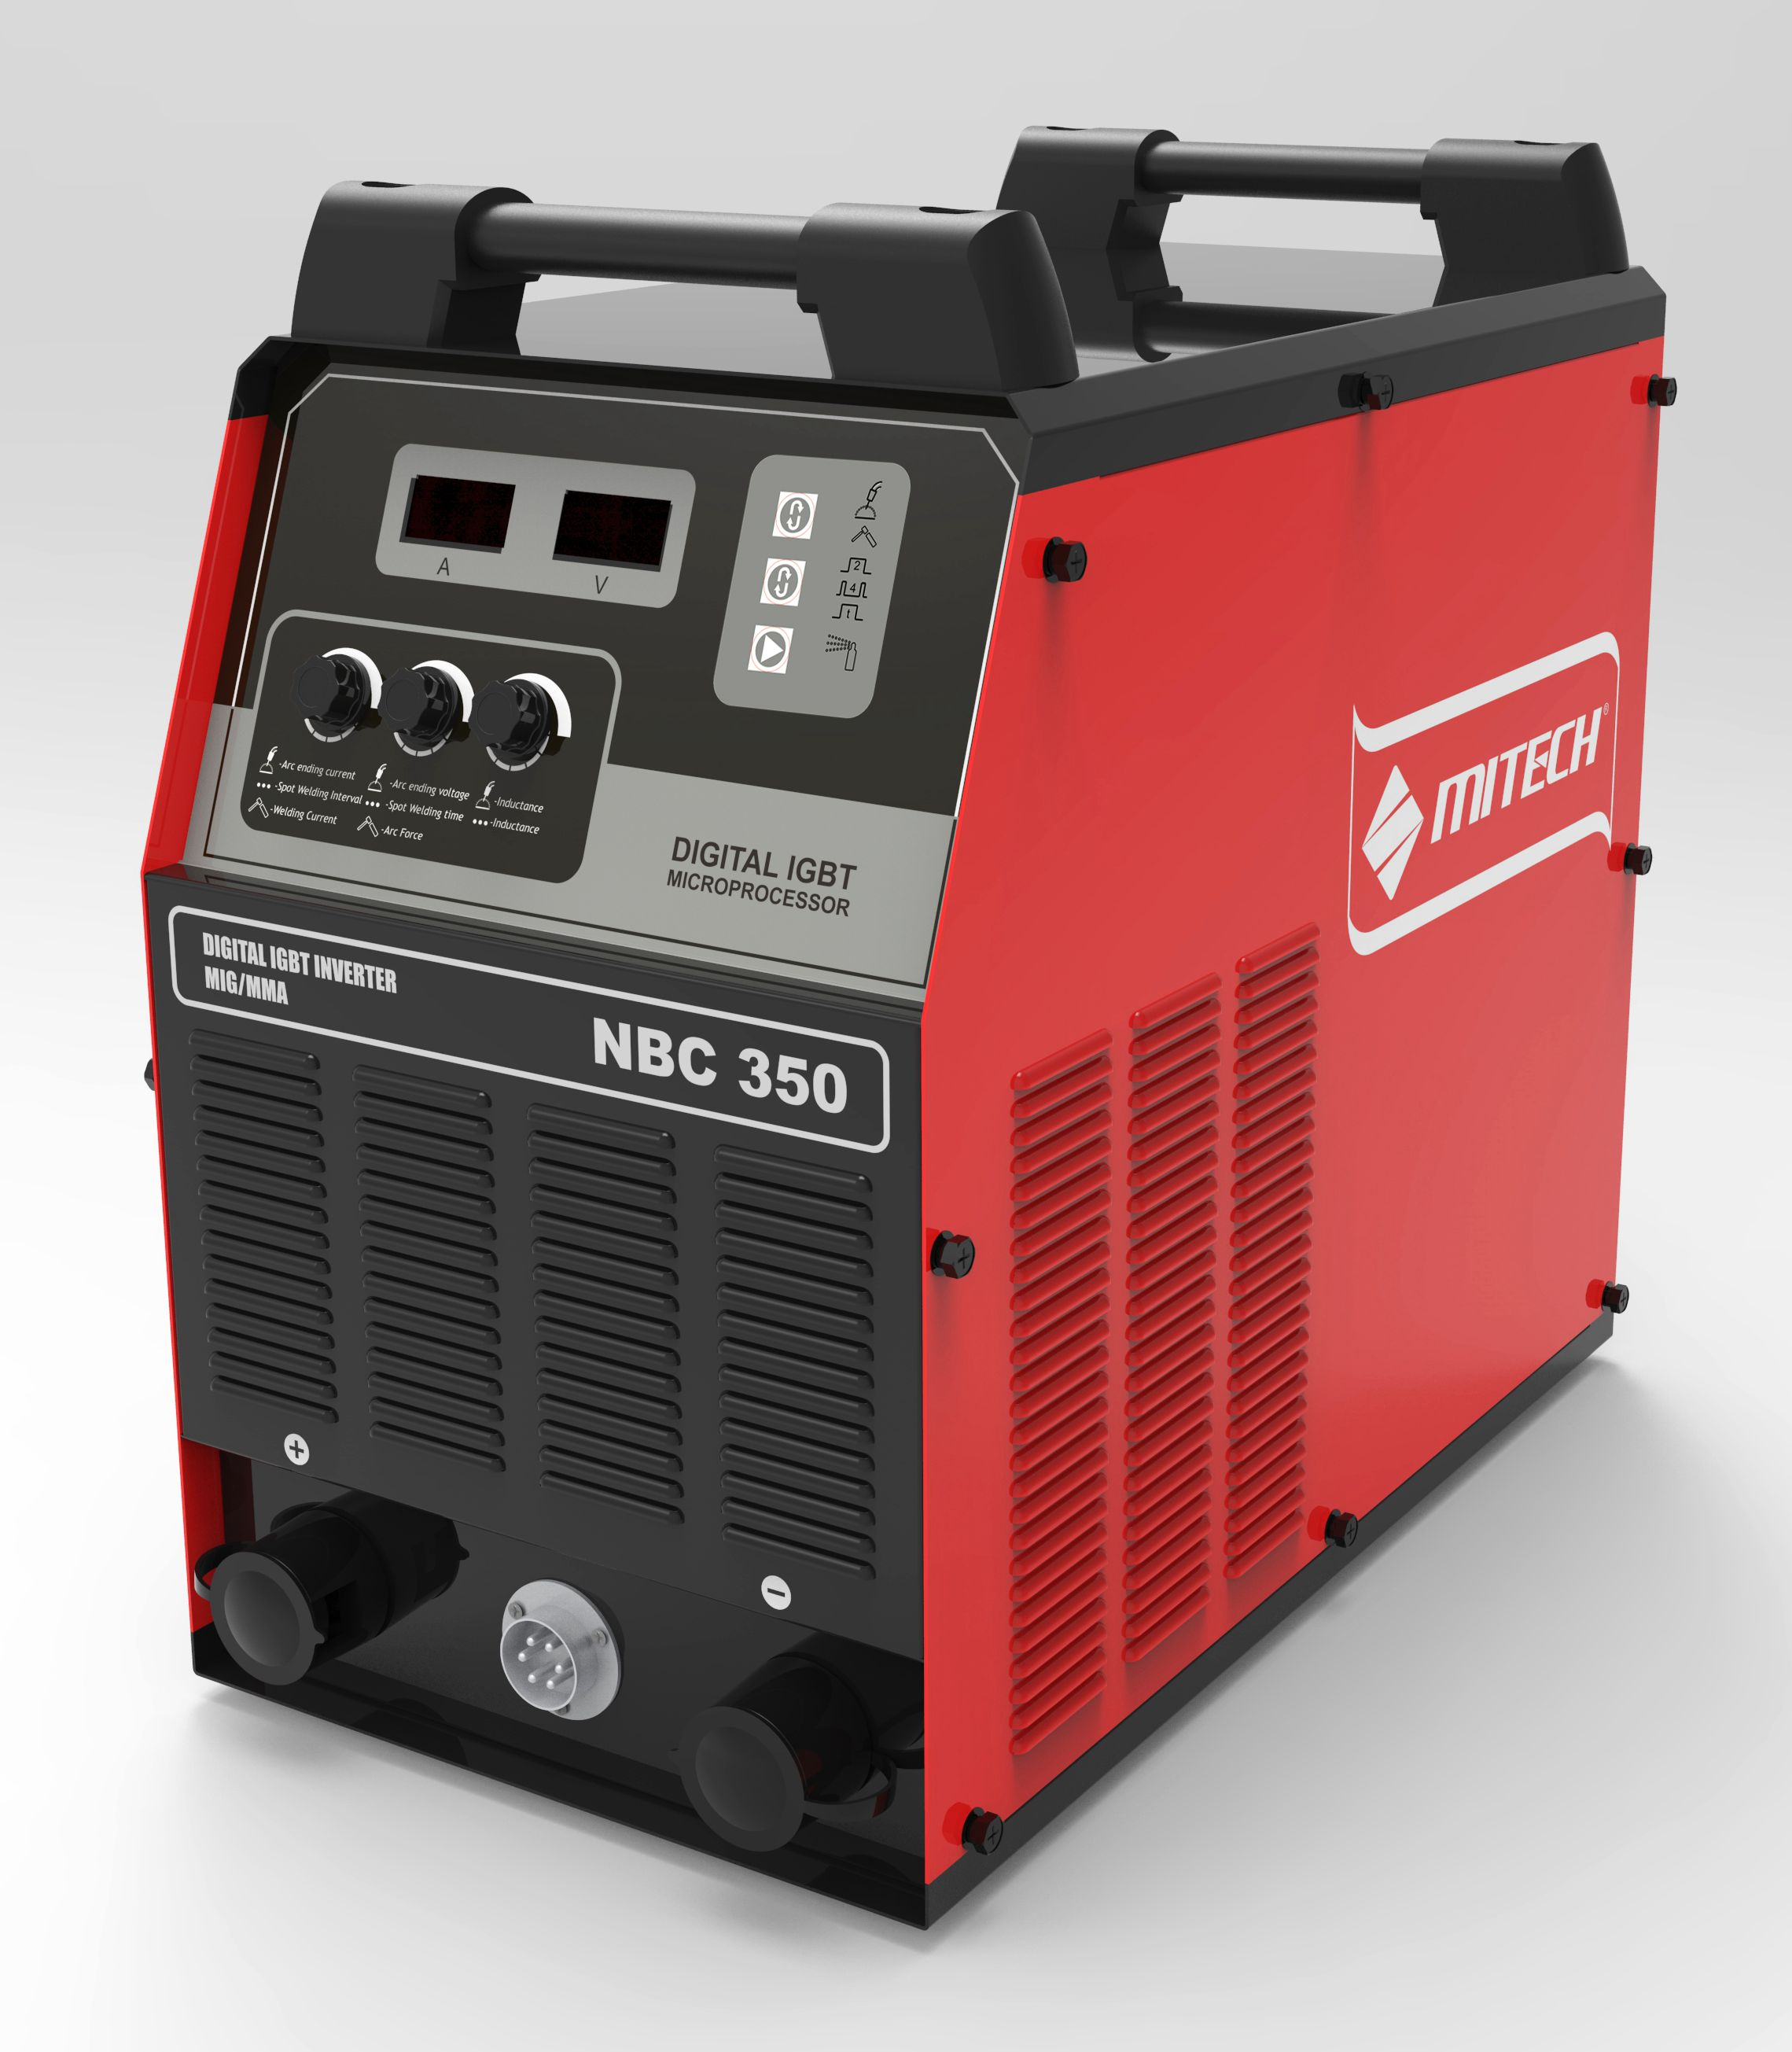 DIGITAL INVERTER MIG/MMA WELDING MACHINE